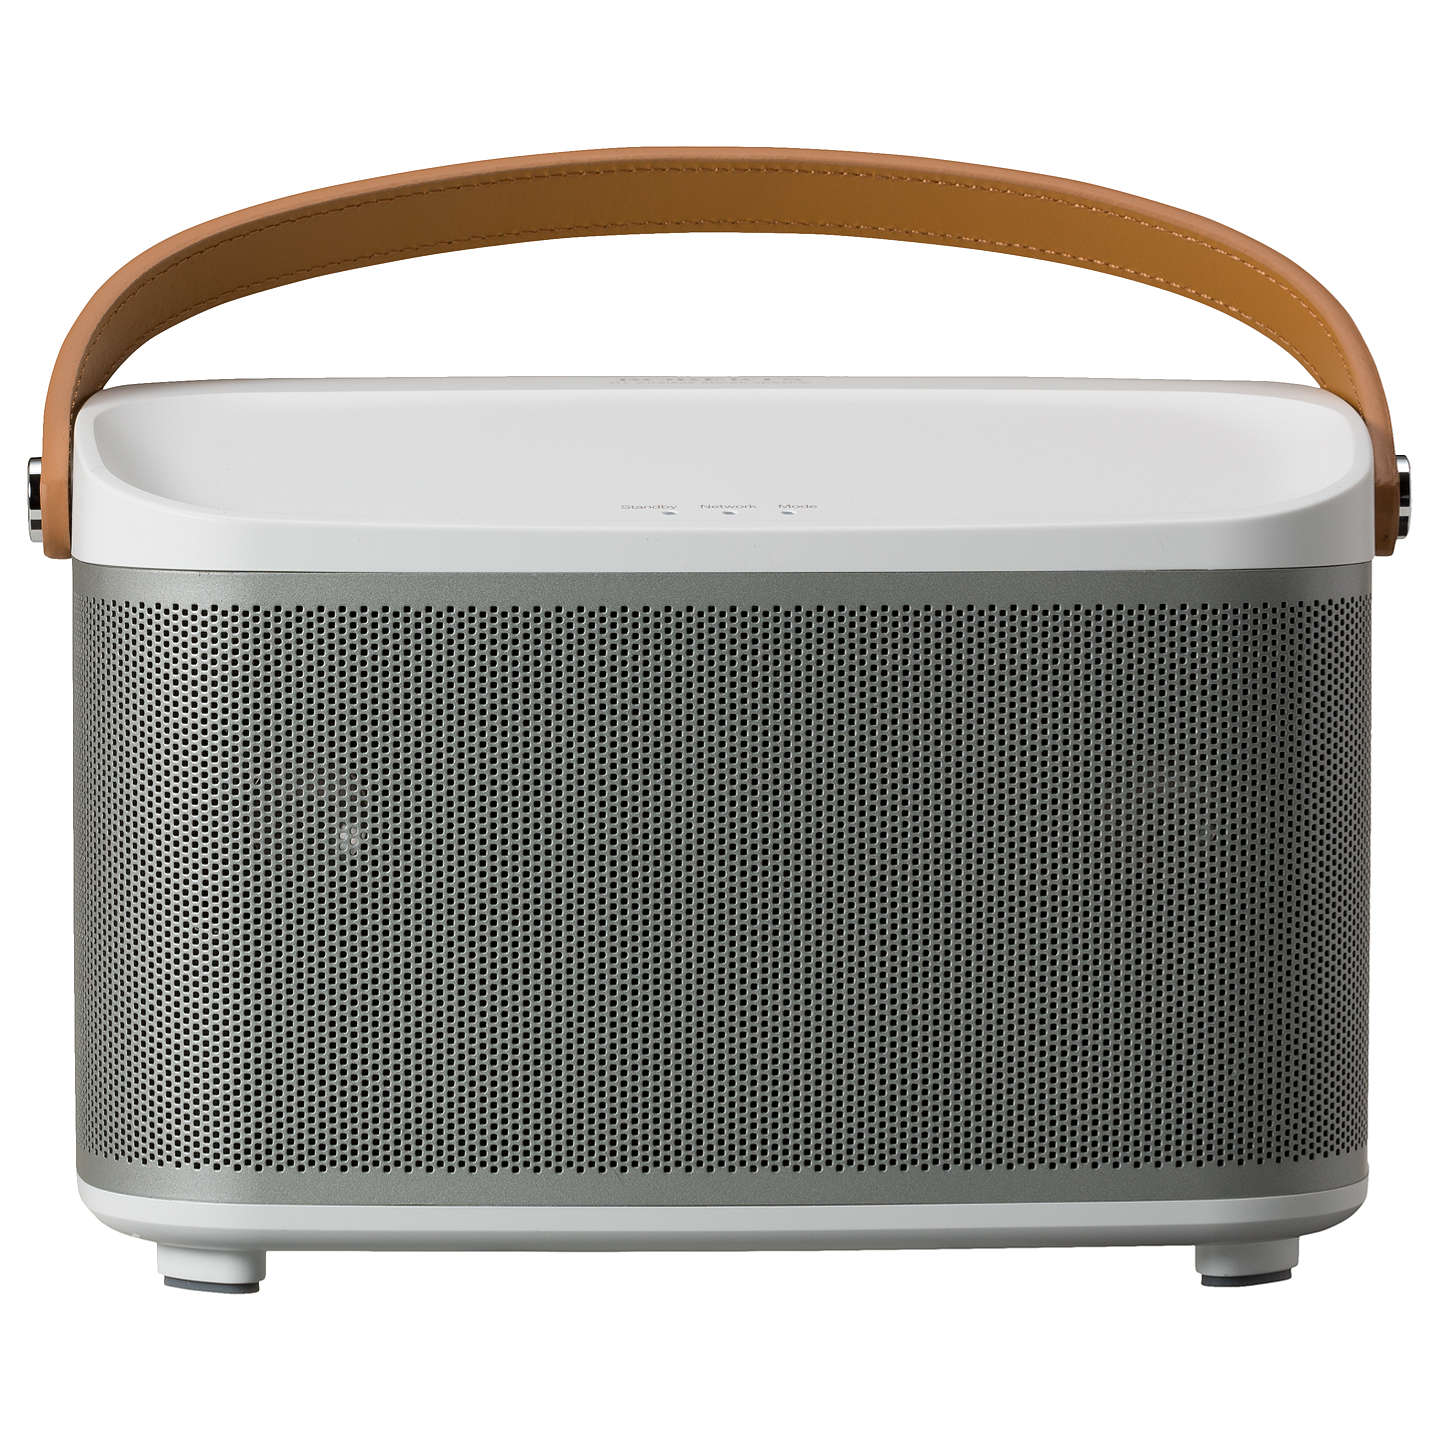 ROBERTS R1 Bluetooth Multi-Room Speaker With Internet Radio At John Lewis